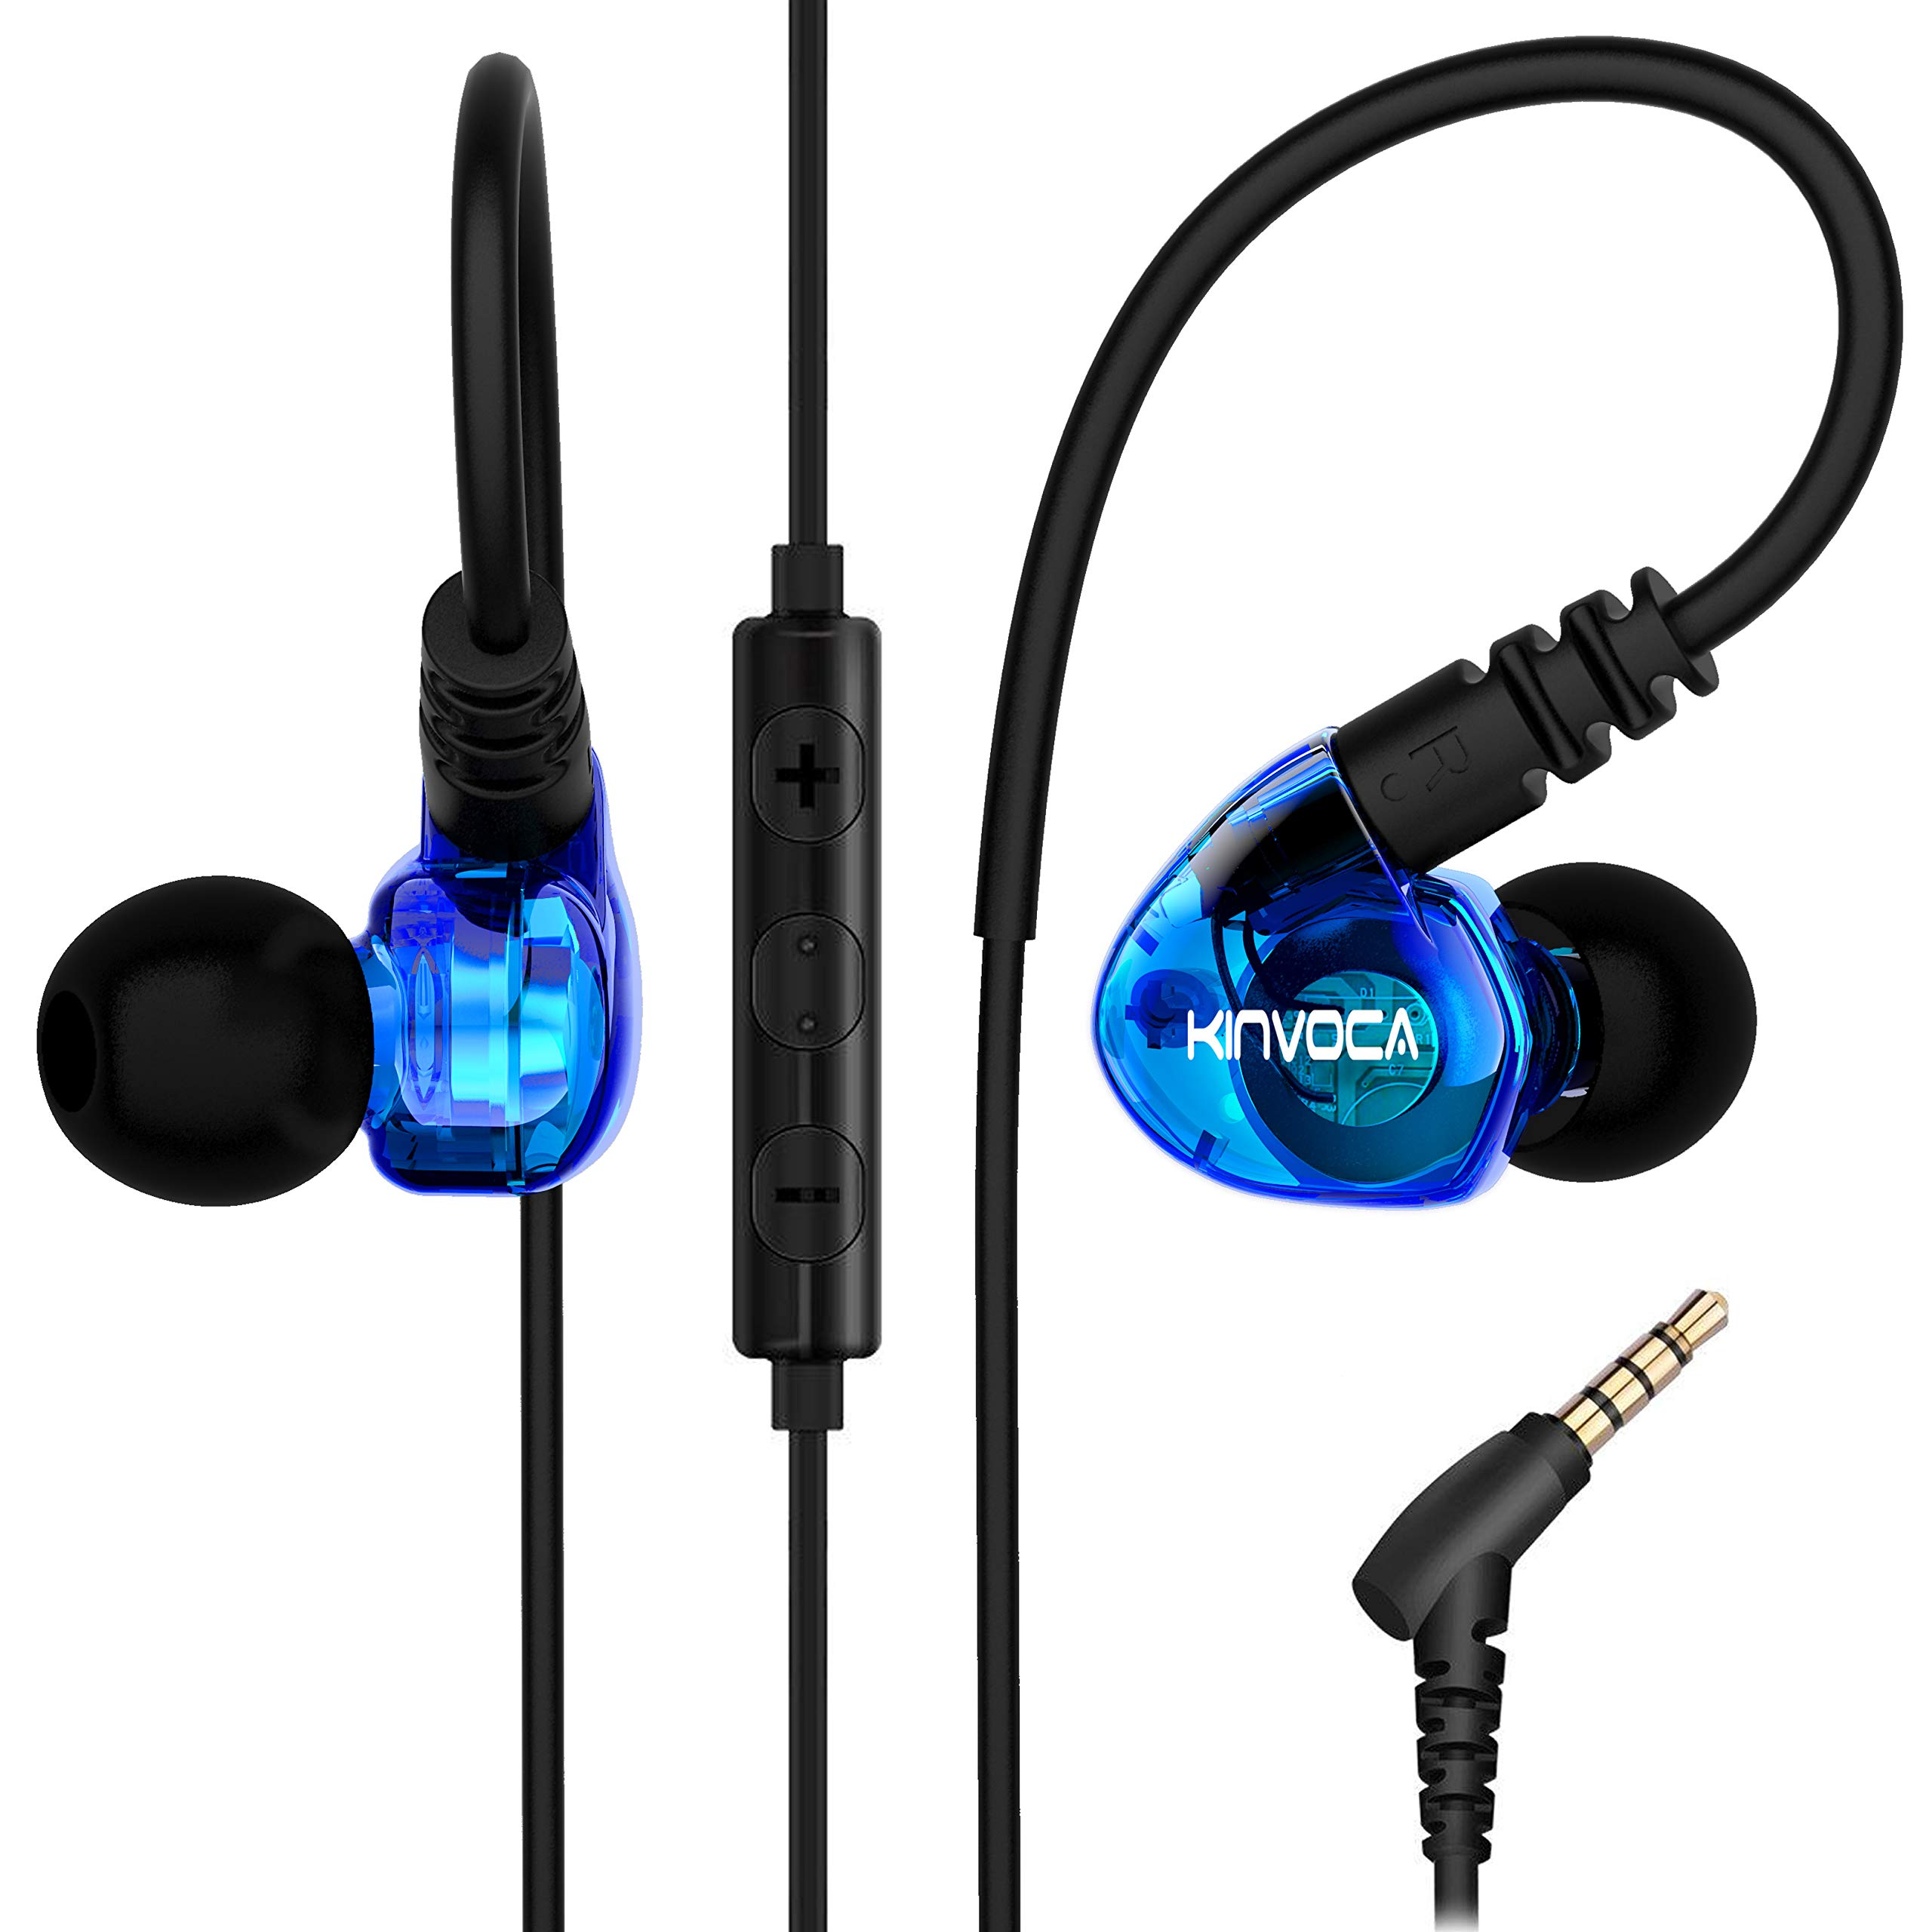 KINVOCA Running Earbuds Over Ear Buds Microphone Volume Control Remote Noise Cancelling Earhook Headphones Sweatproof in Ear Earphones Gym Jogging Workout Exercise Blue